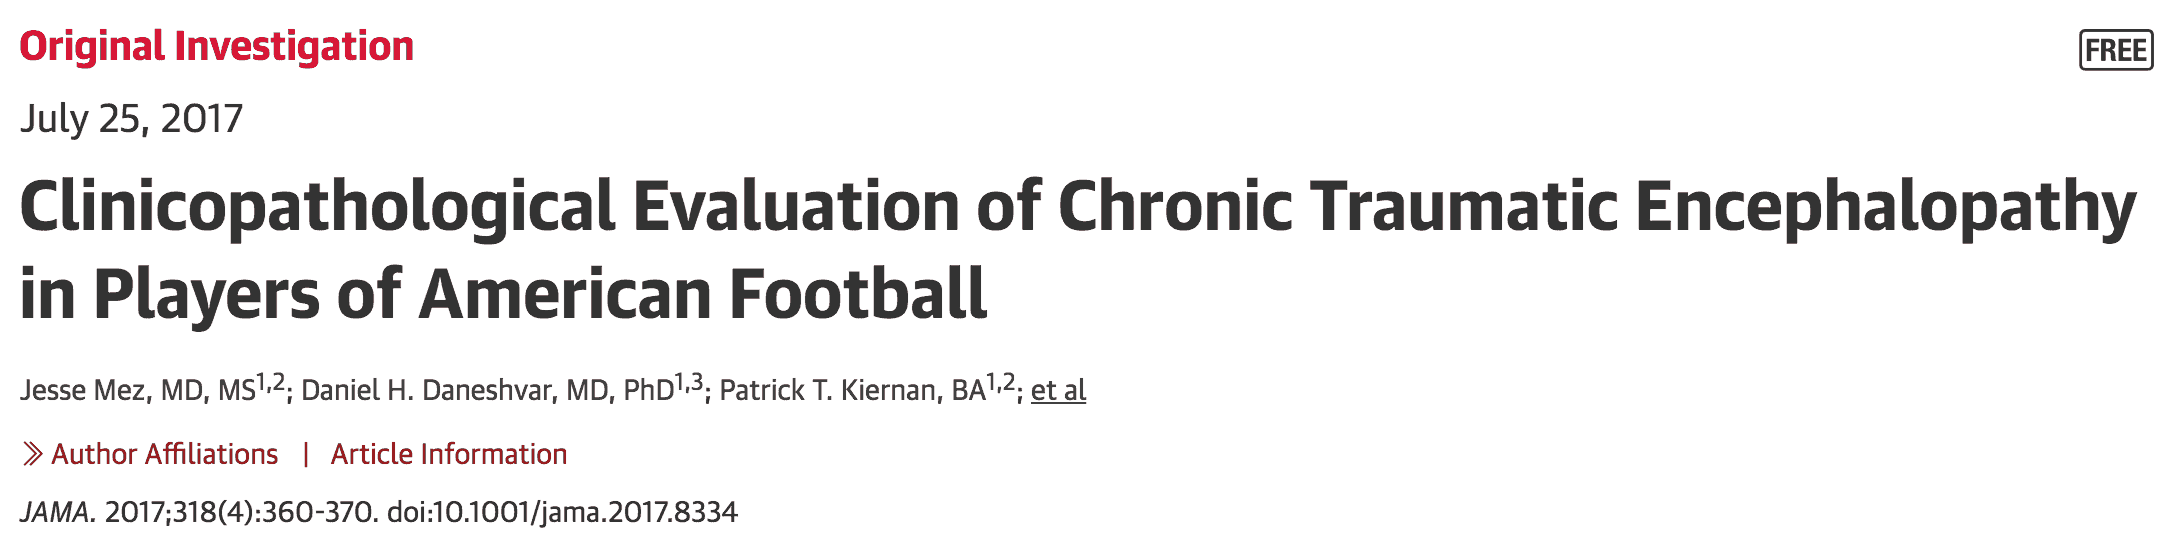 Chronic Traumatic Encephalopathy (CTE) - A Disease of Athletes